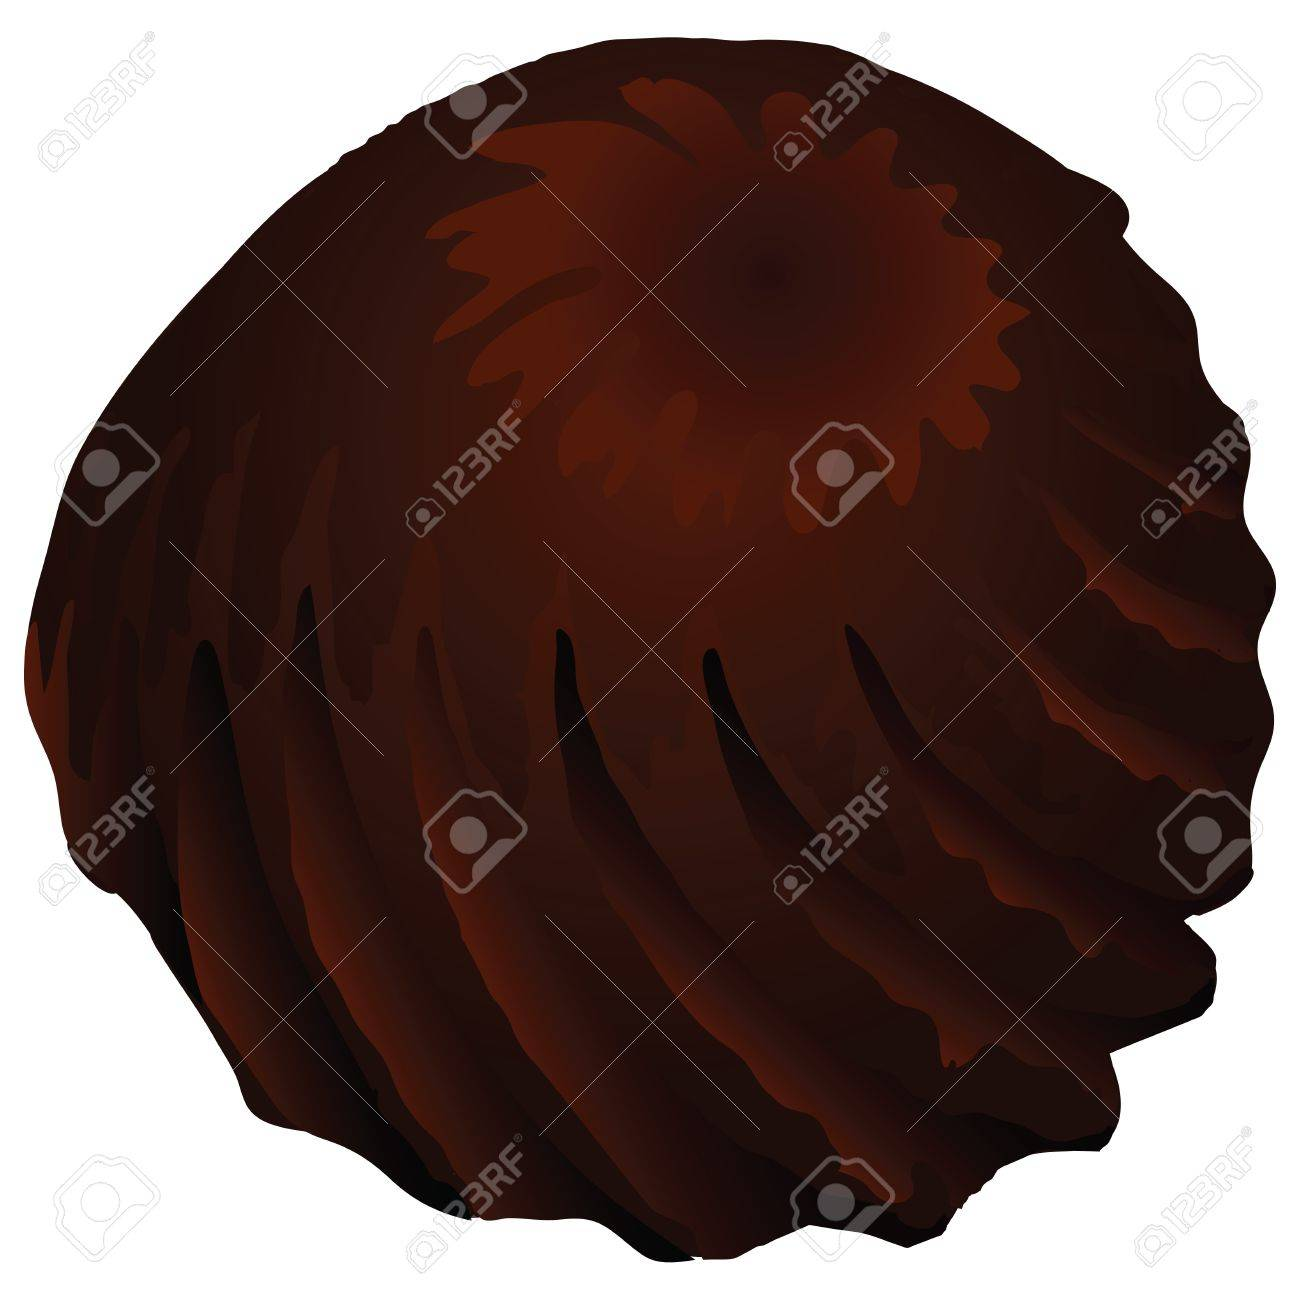 Truffle chocolate candy with a twisted spiral illustration. Stock Vector - 20410061